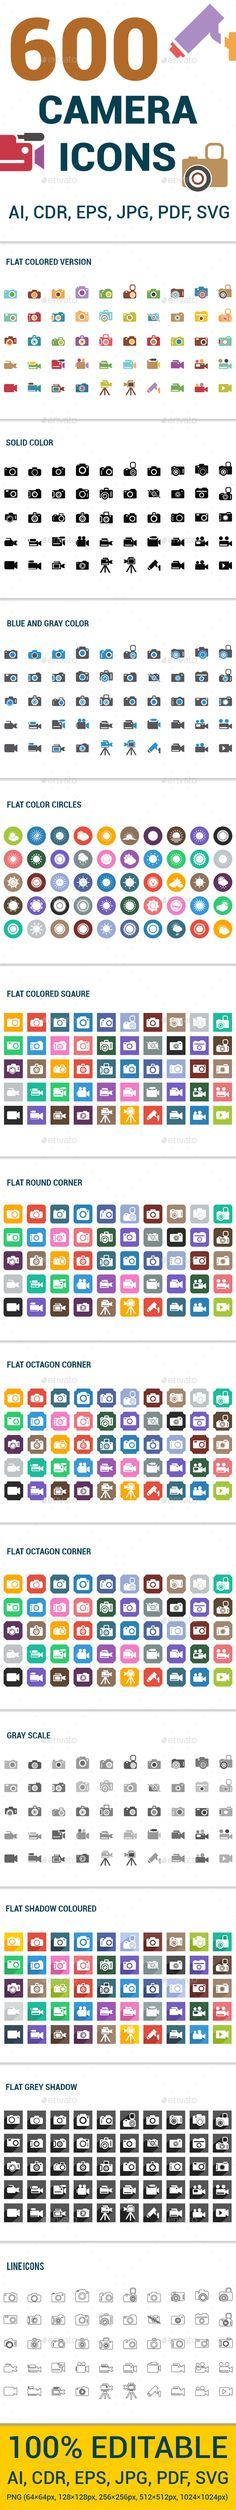 600 Camera Icons Set #design Download: http://graphicriver.net/item/600-camera-icons-set/13290381?ref=ksioks